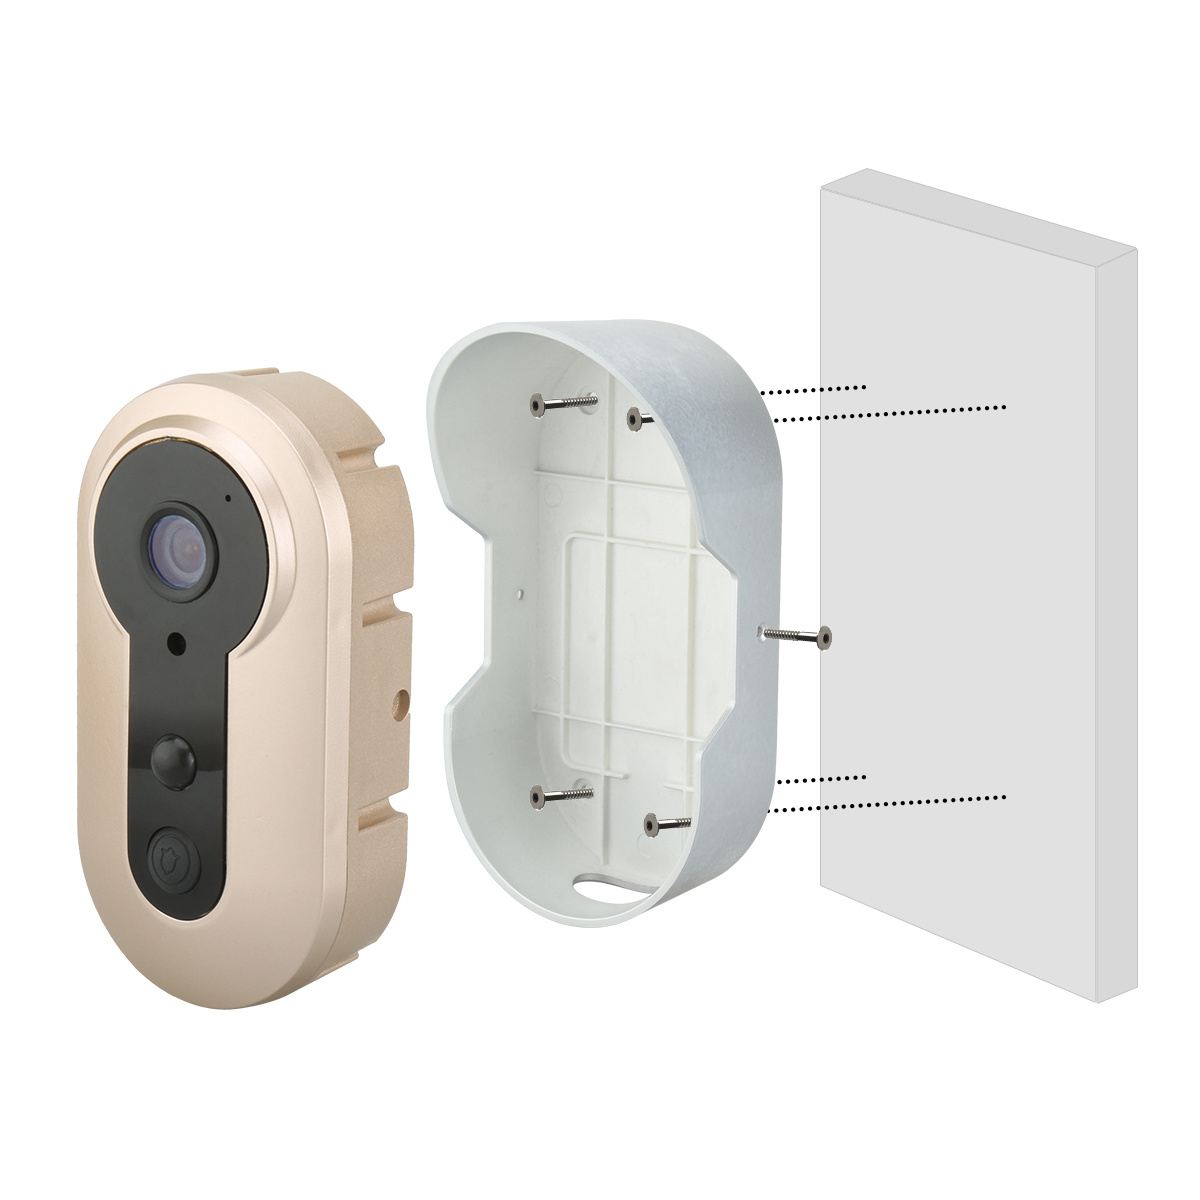 Battery Operated Wireless Security Door Cameras Remote Ring HD Phone Smart PIR Motion Sensor WiFi Video Doorbell pictures & photos